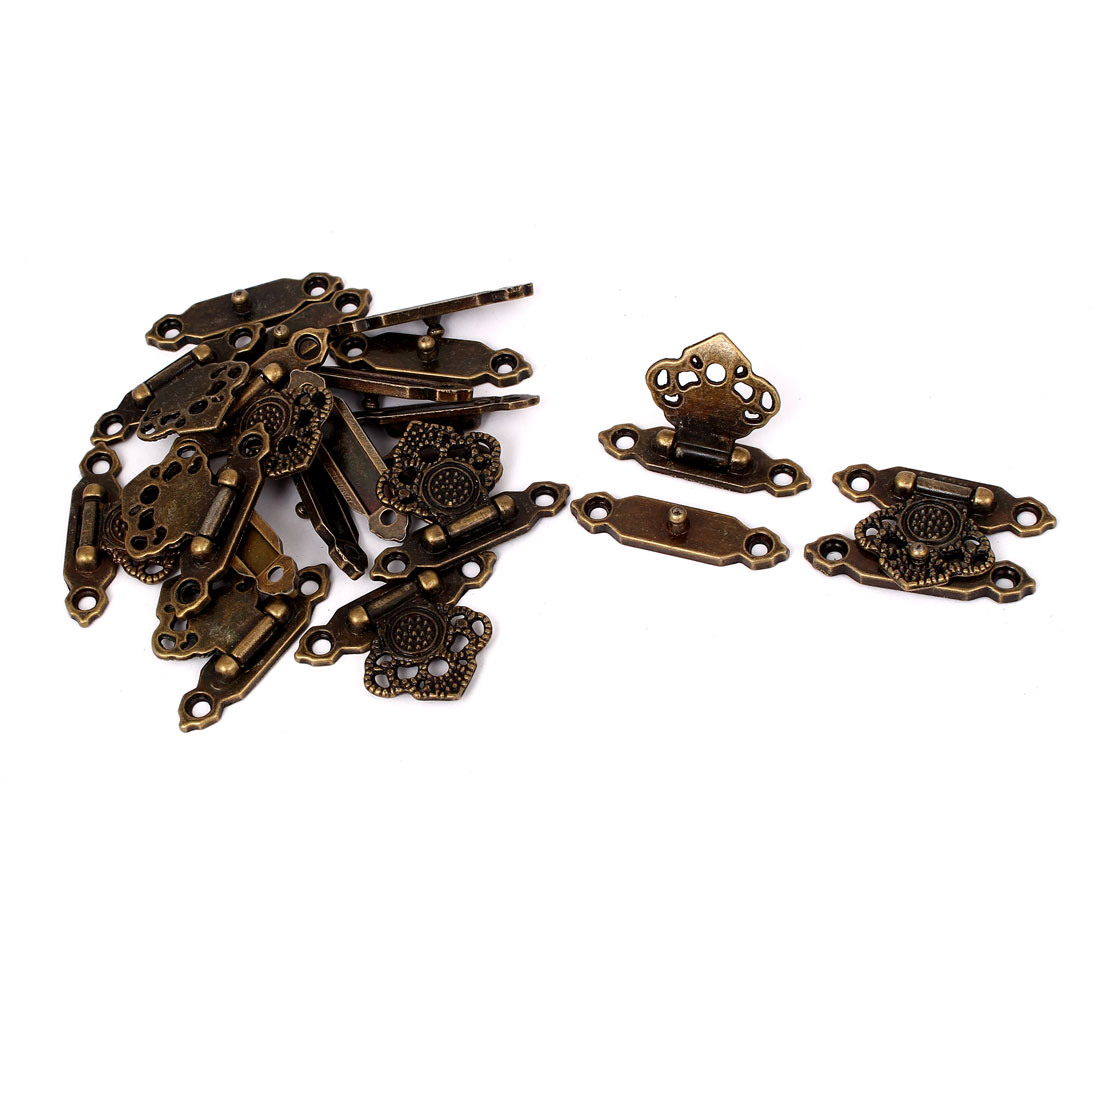 Antique Style Wooden Case Chest Jewelry Box Clasp Hasp Latches Bronze Tone 10pcs